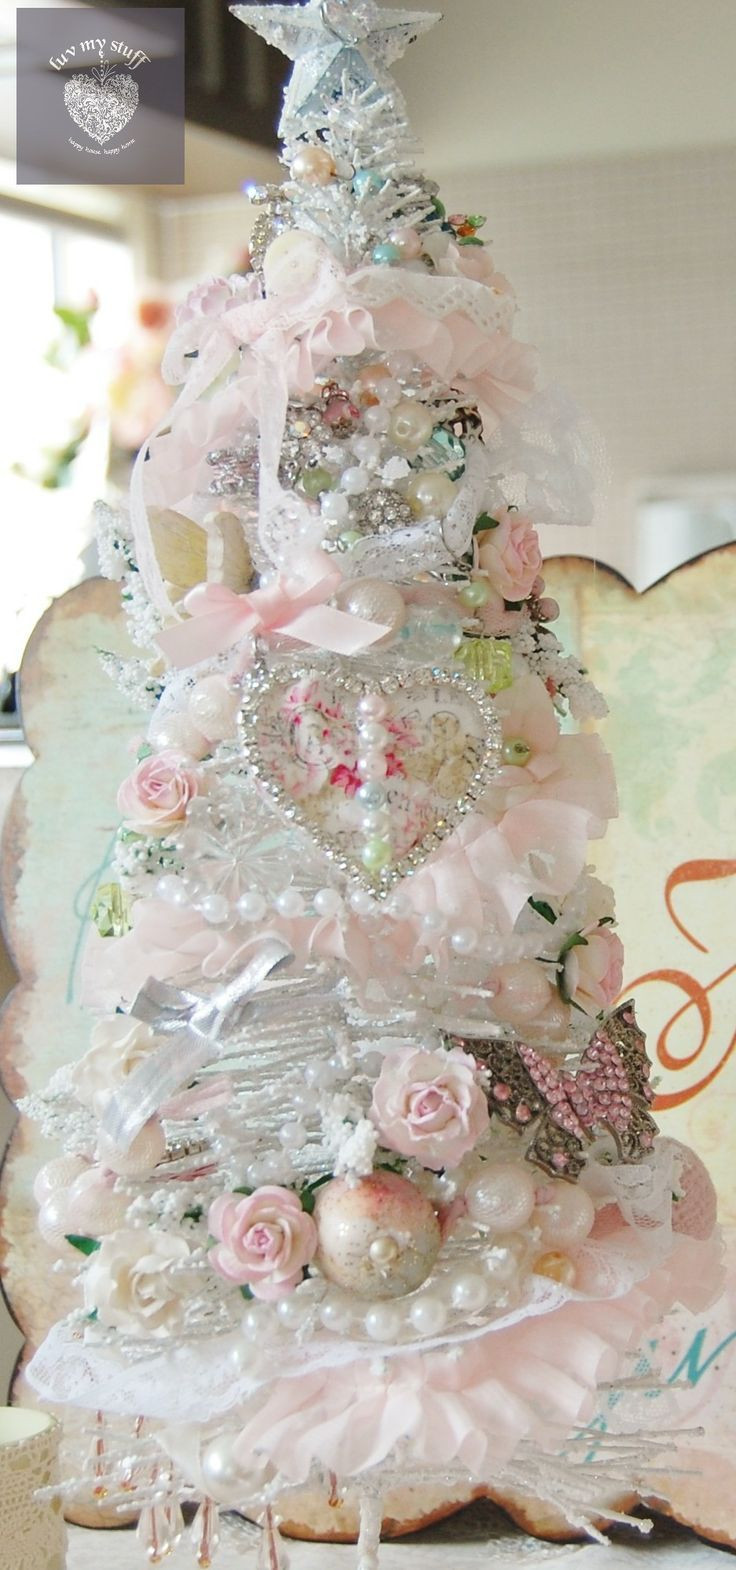 Best ideas about Shabby Chic Christmas Tree . Save or Pin 17 Best images about Shabby Christmas on Pinterest Now.